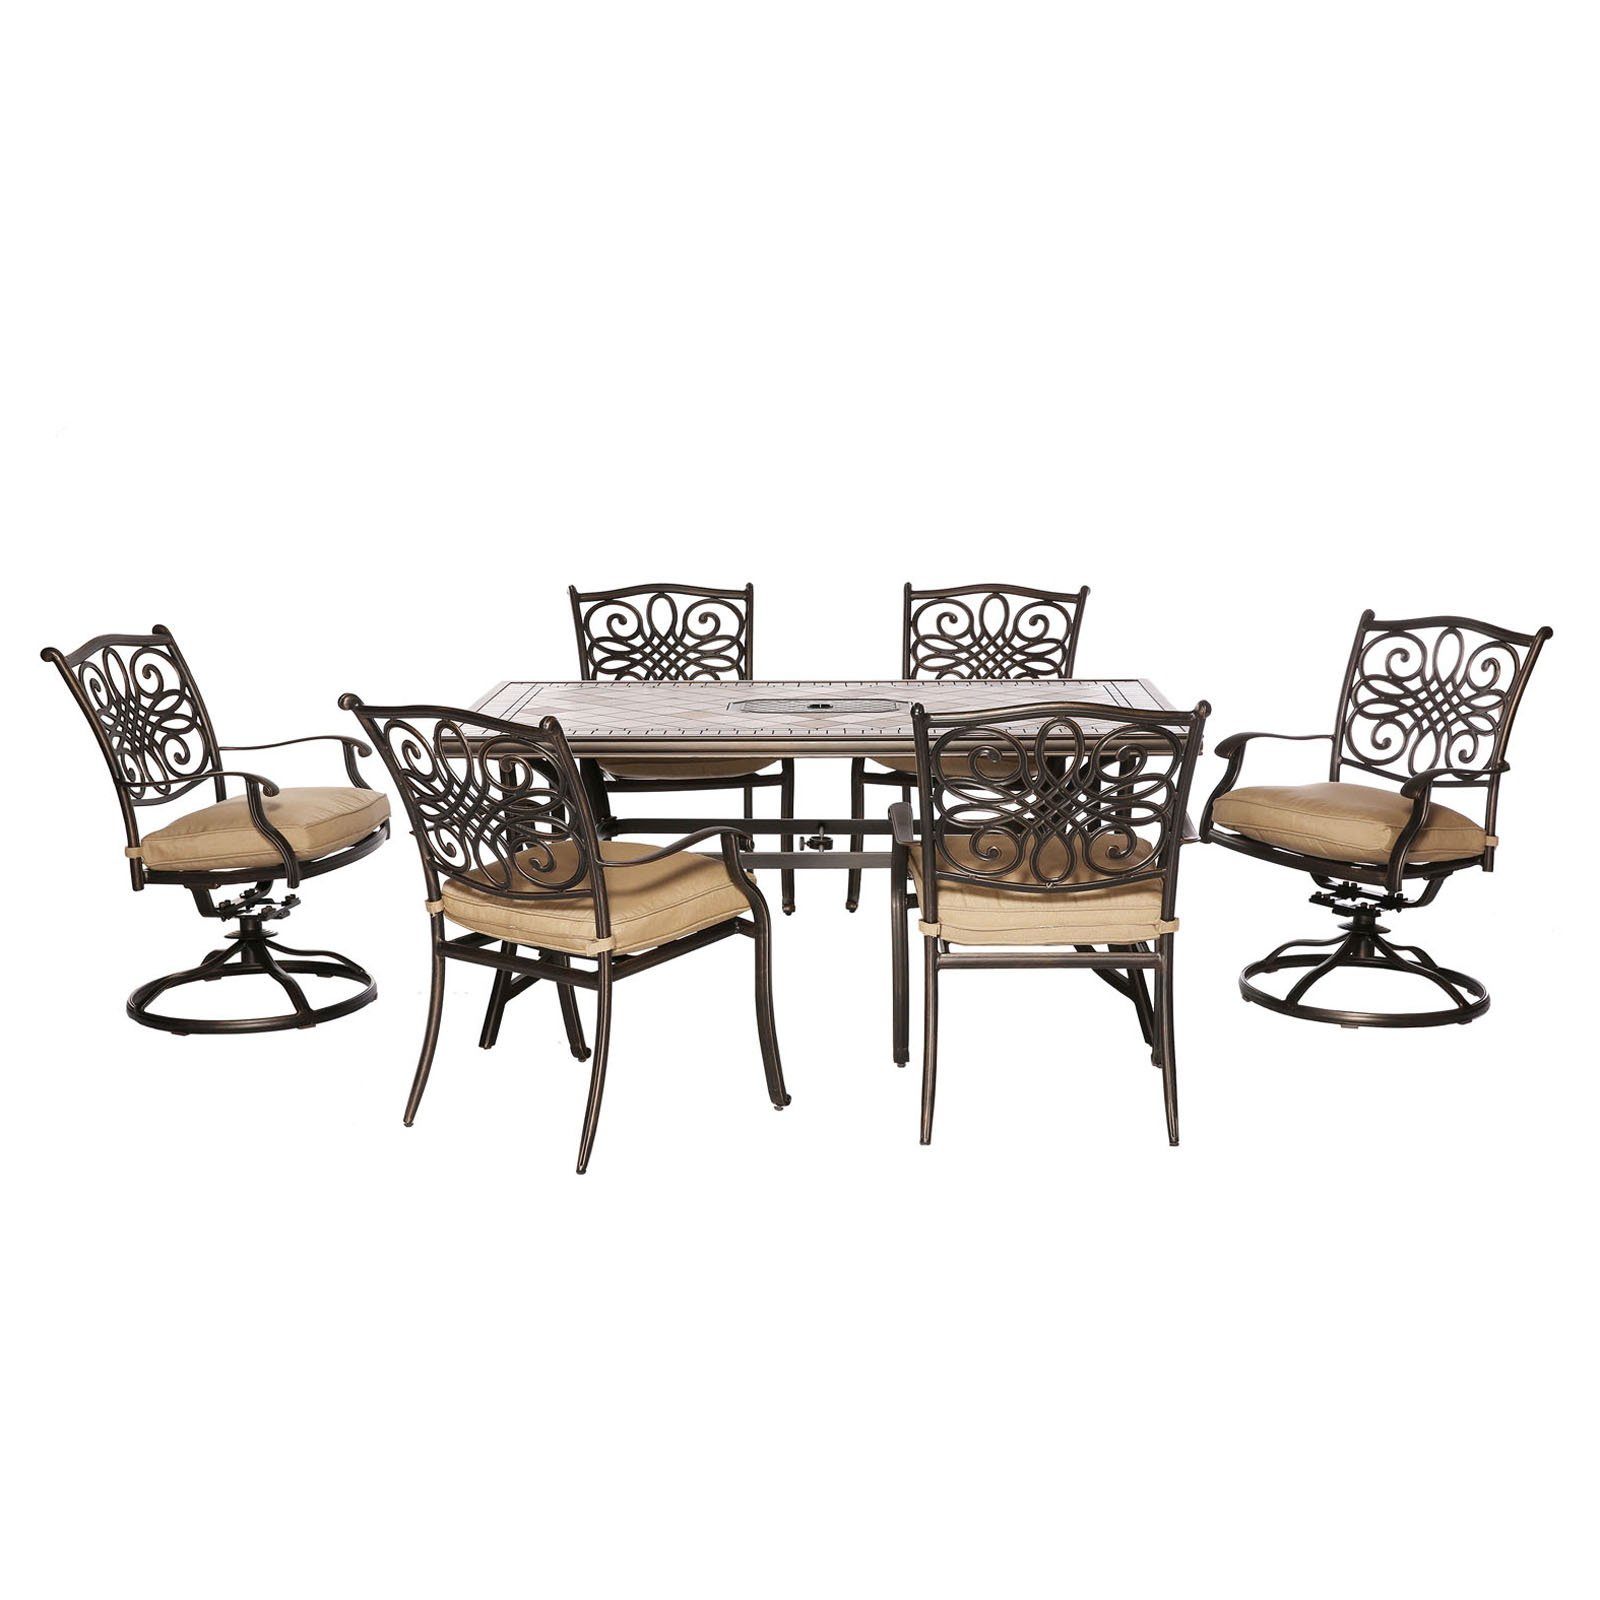 Hanover MONDN7PCSW-2 Monaco 7-Piece Aluminum Framed Outdoor Dining Set with Umbr